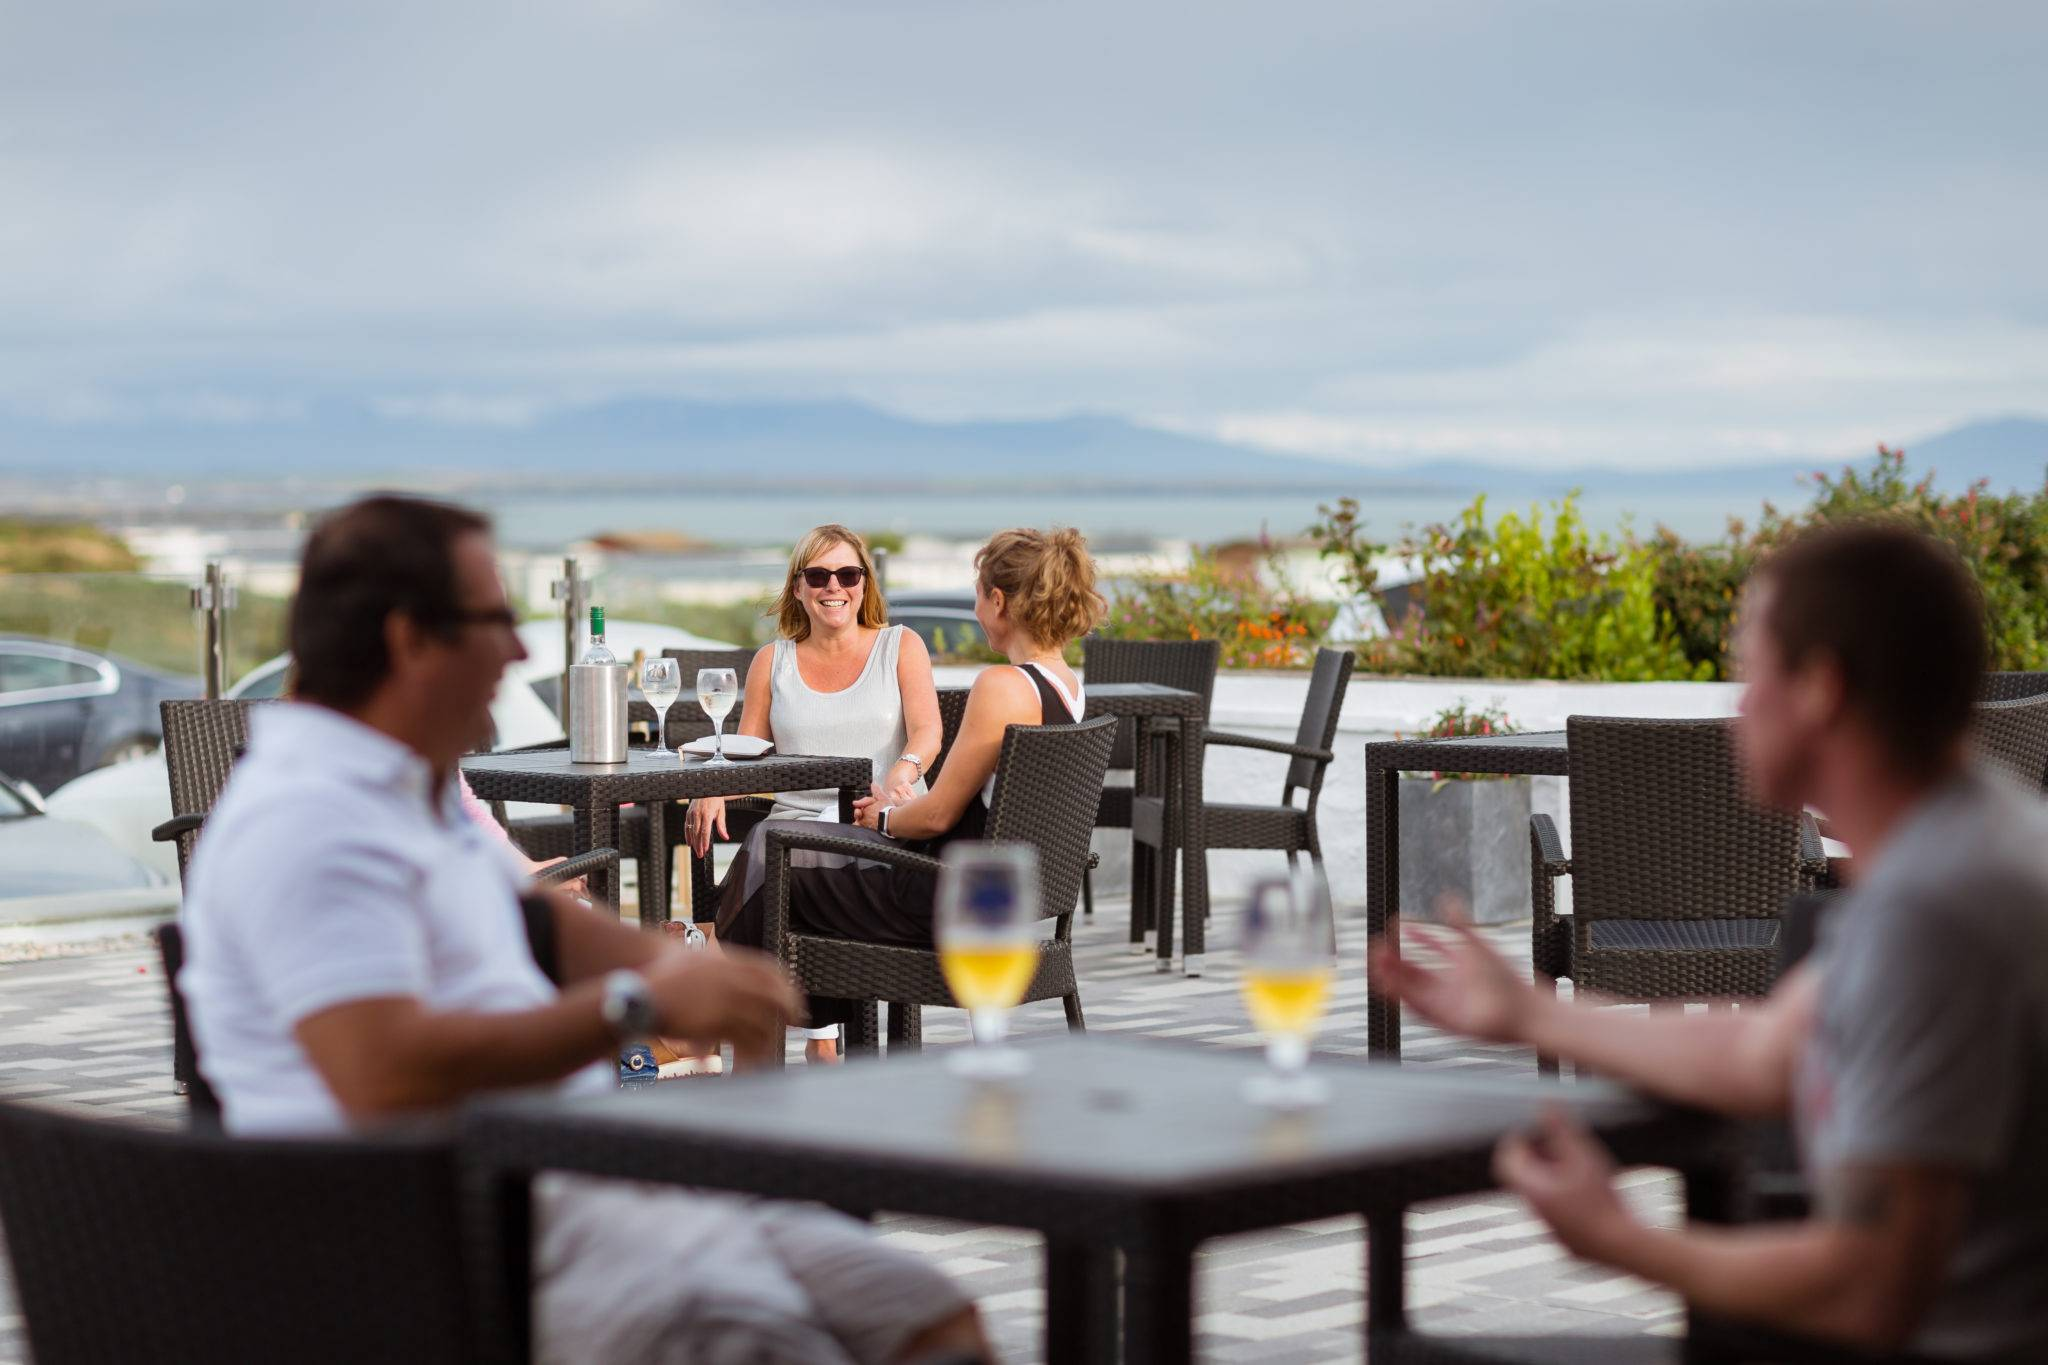 The Deck House Restaurant Bar & Lounge overlooking the Snowdonia mountains.